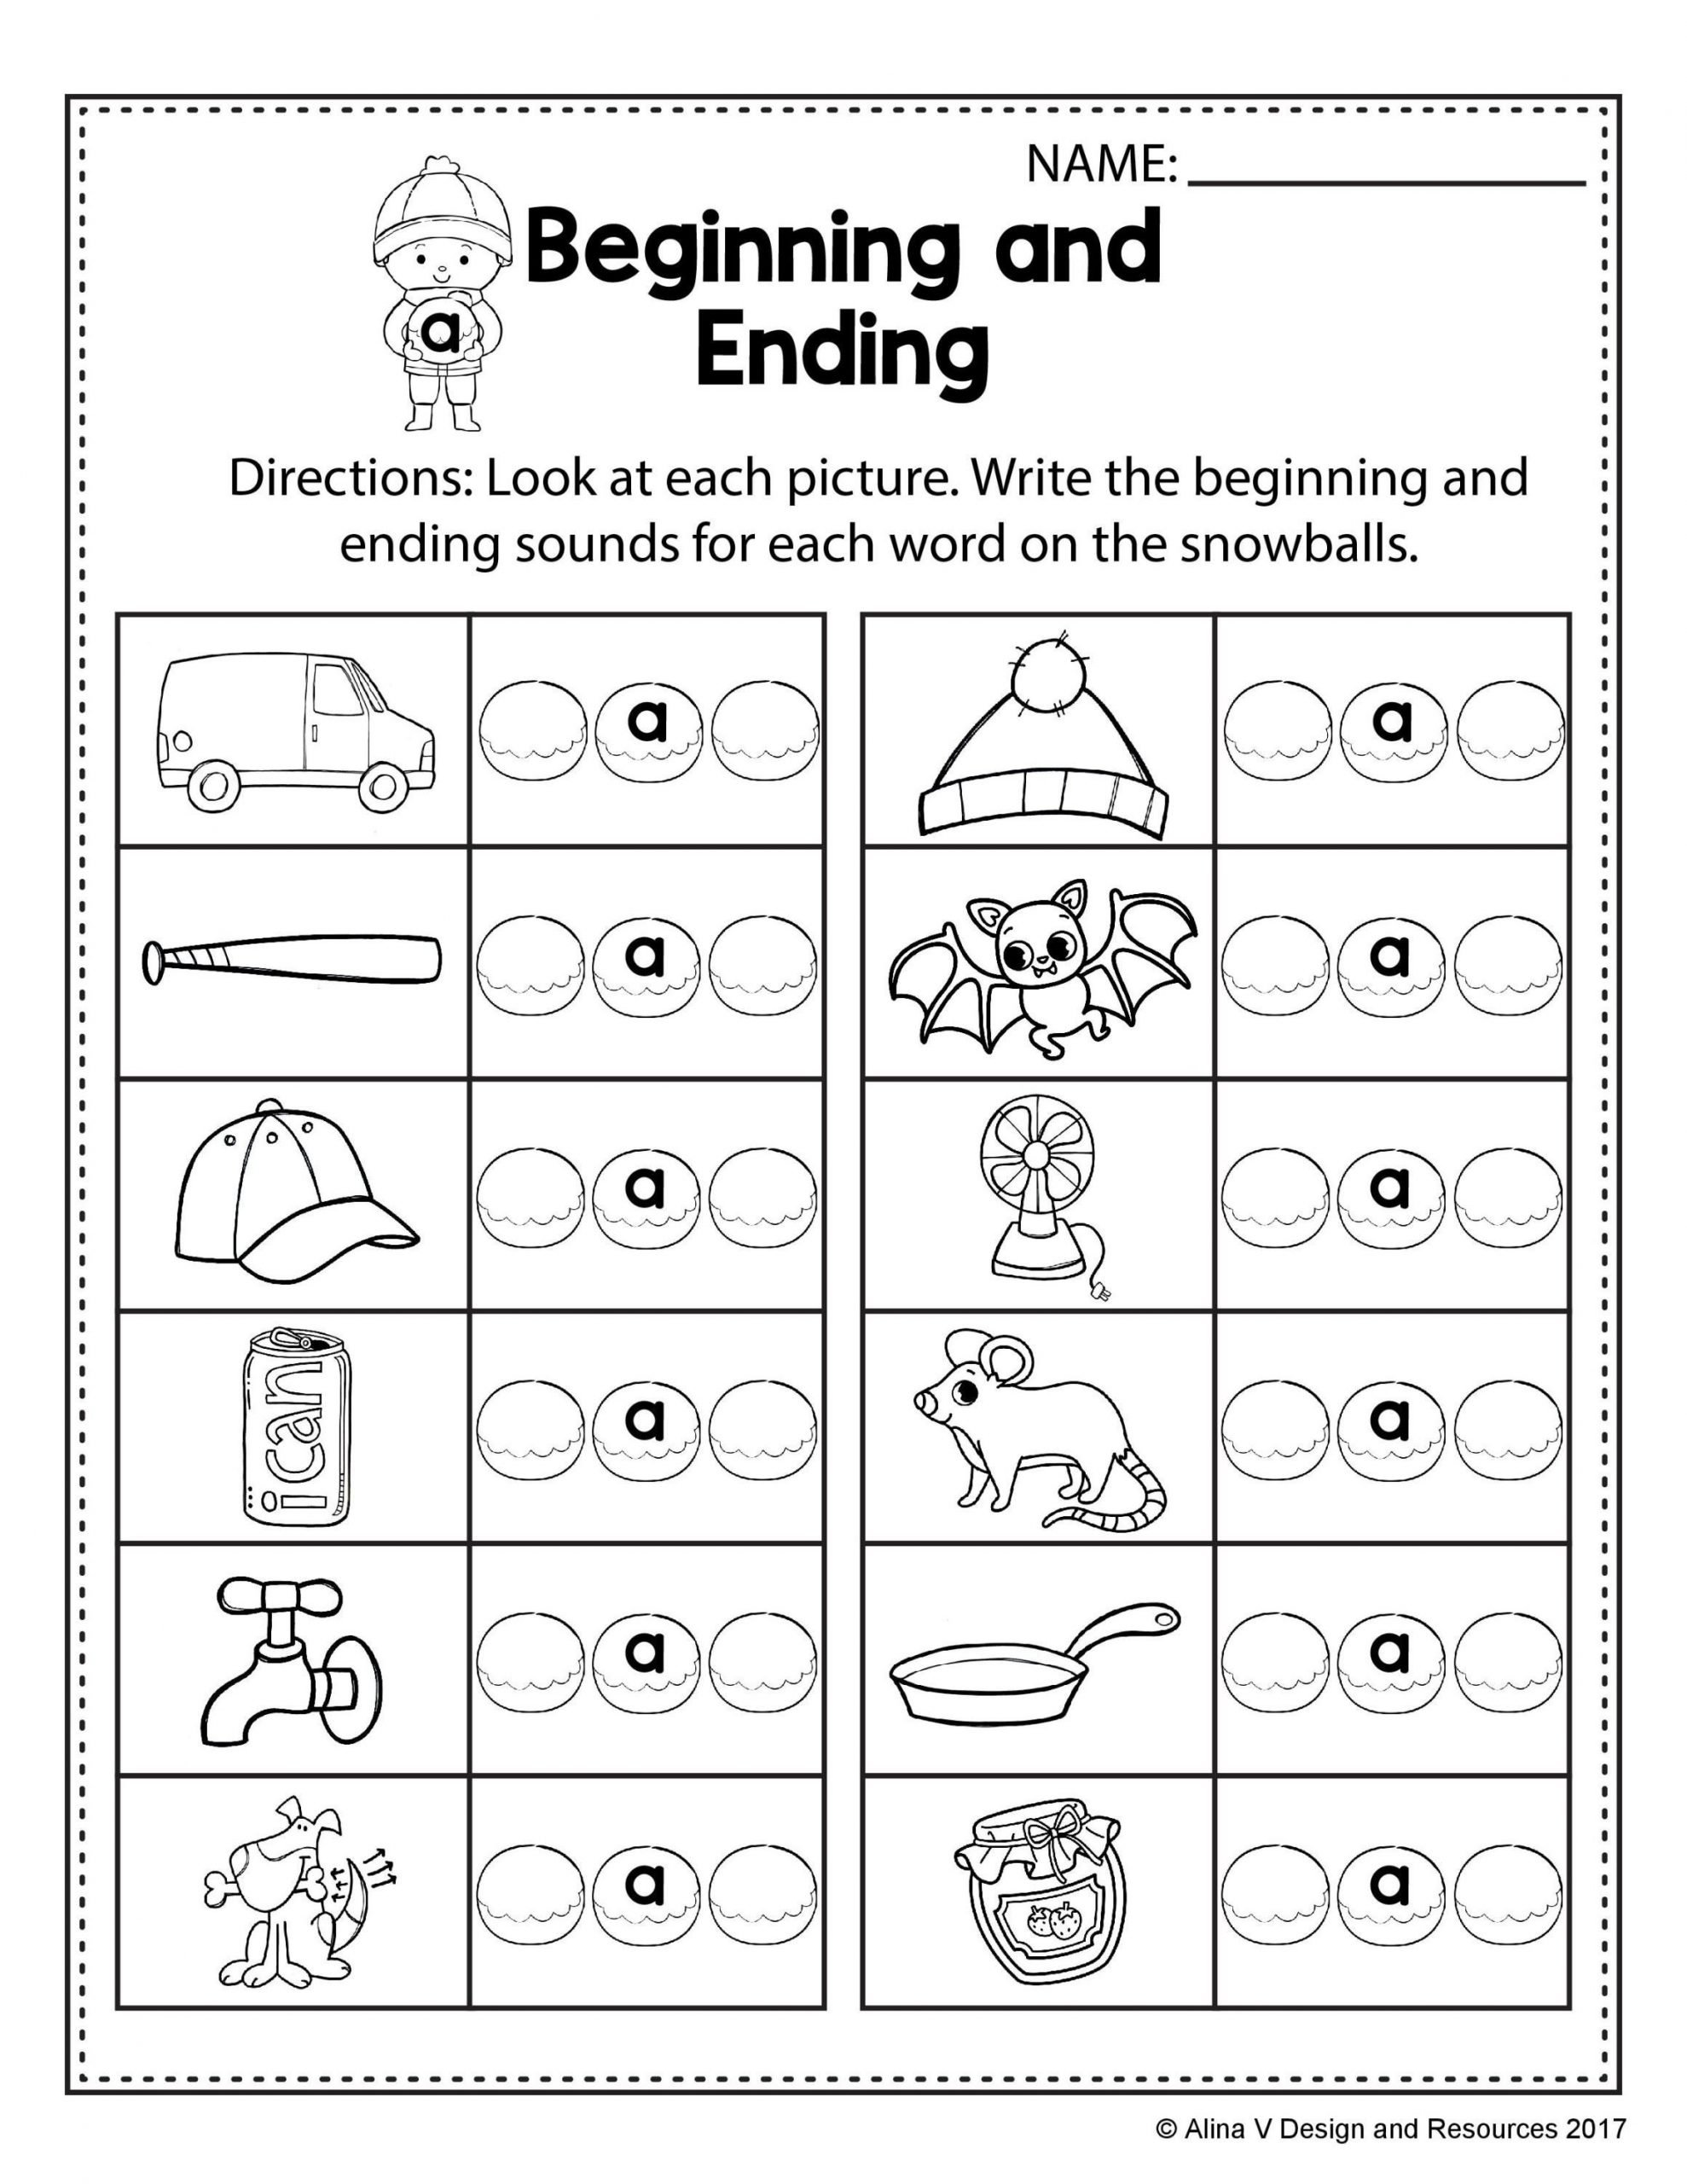 Ending sound Worksheet Ending sounds Worksheet